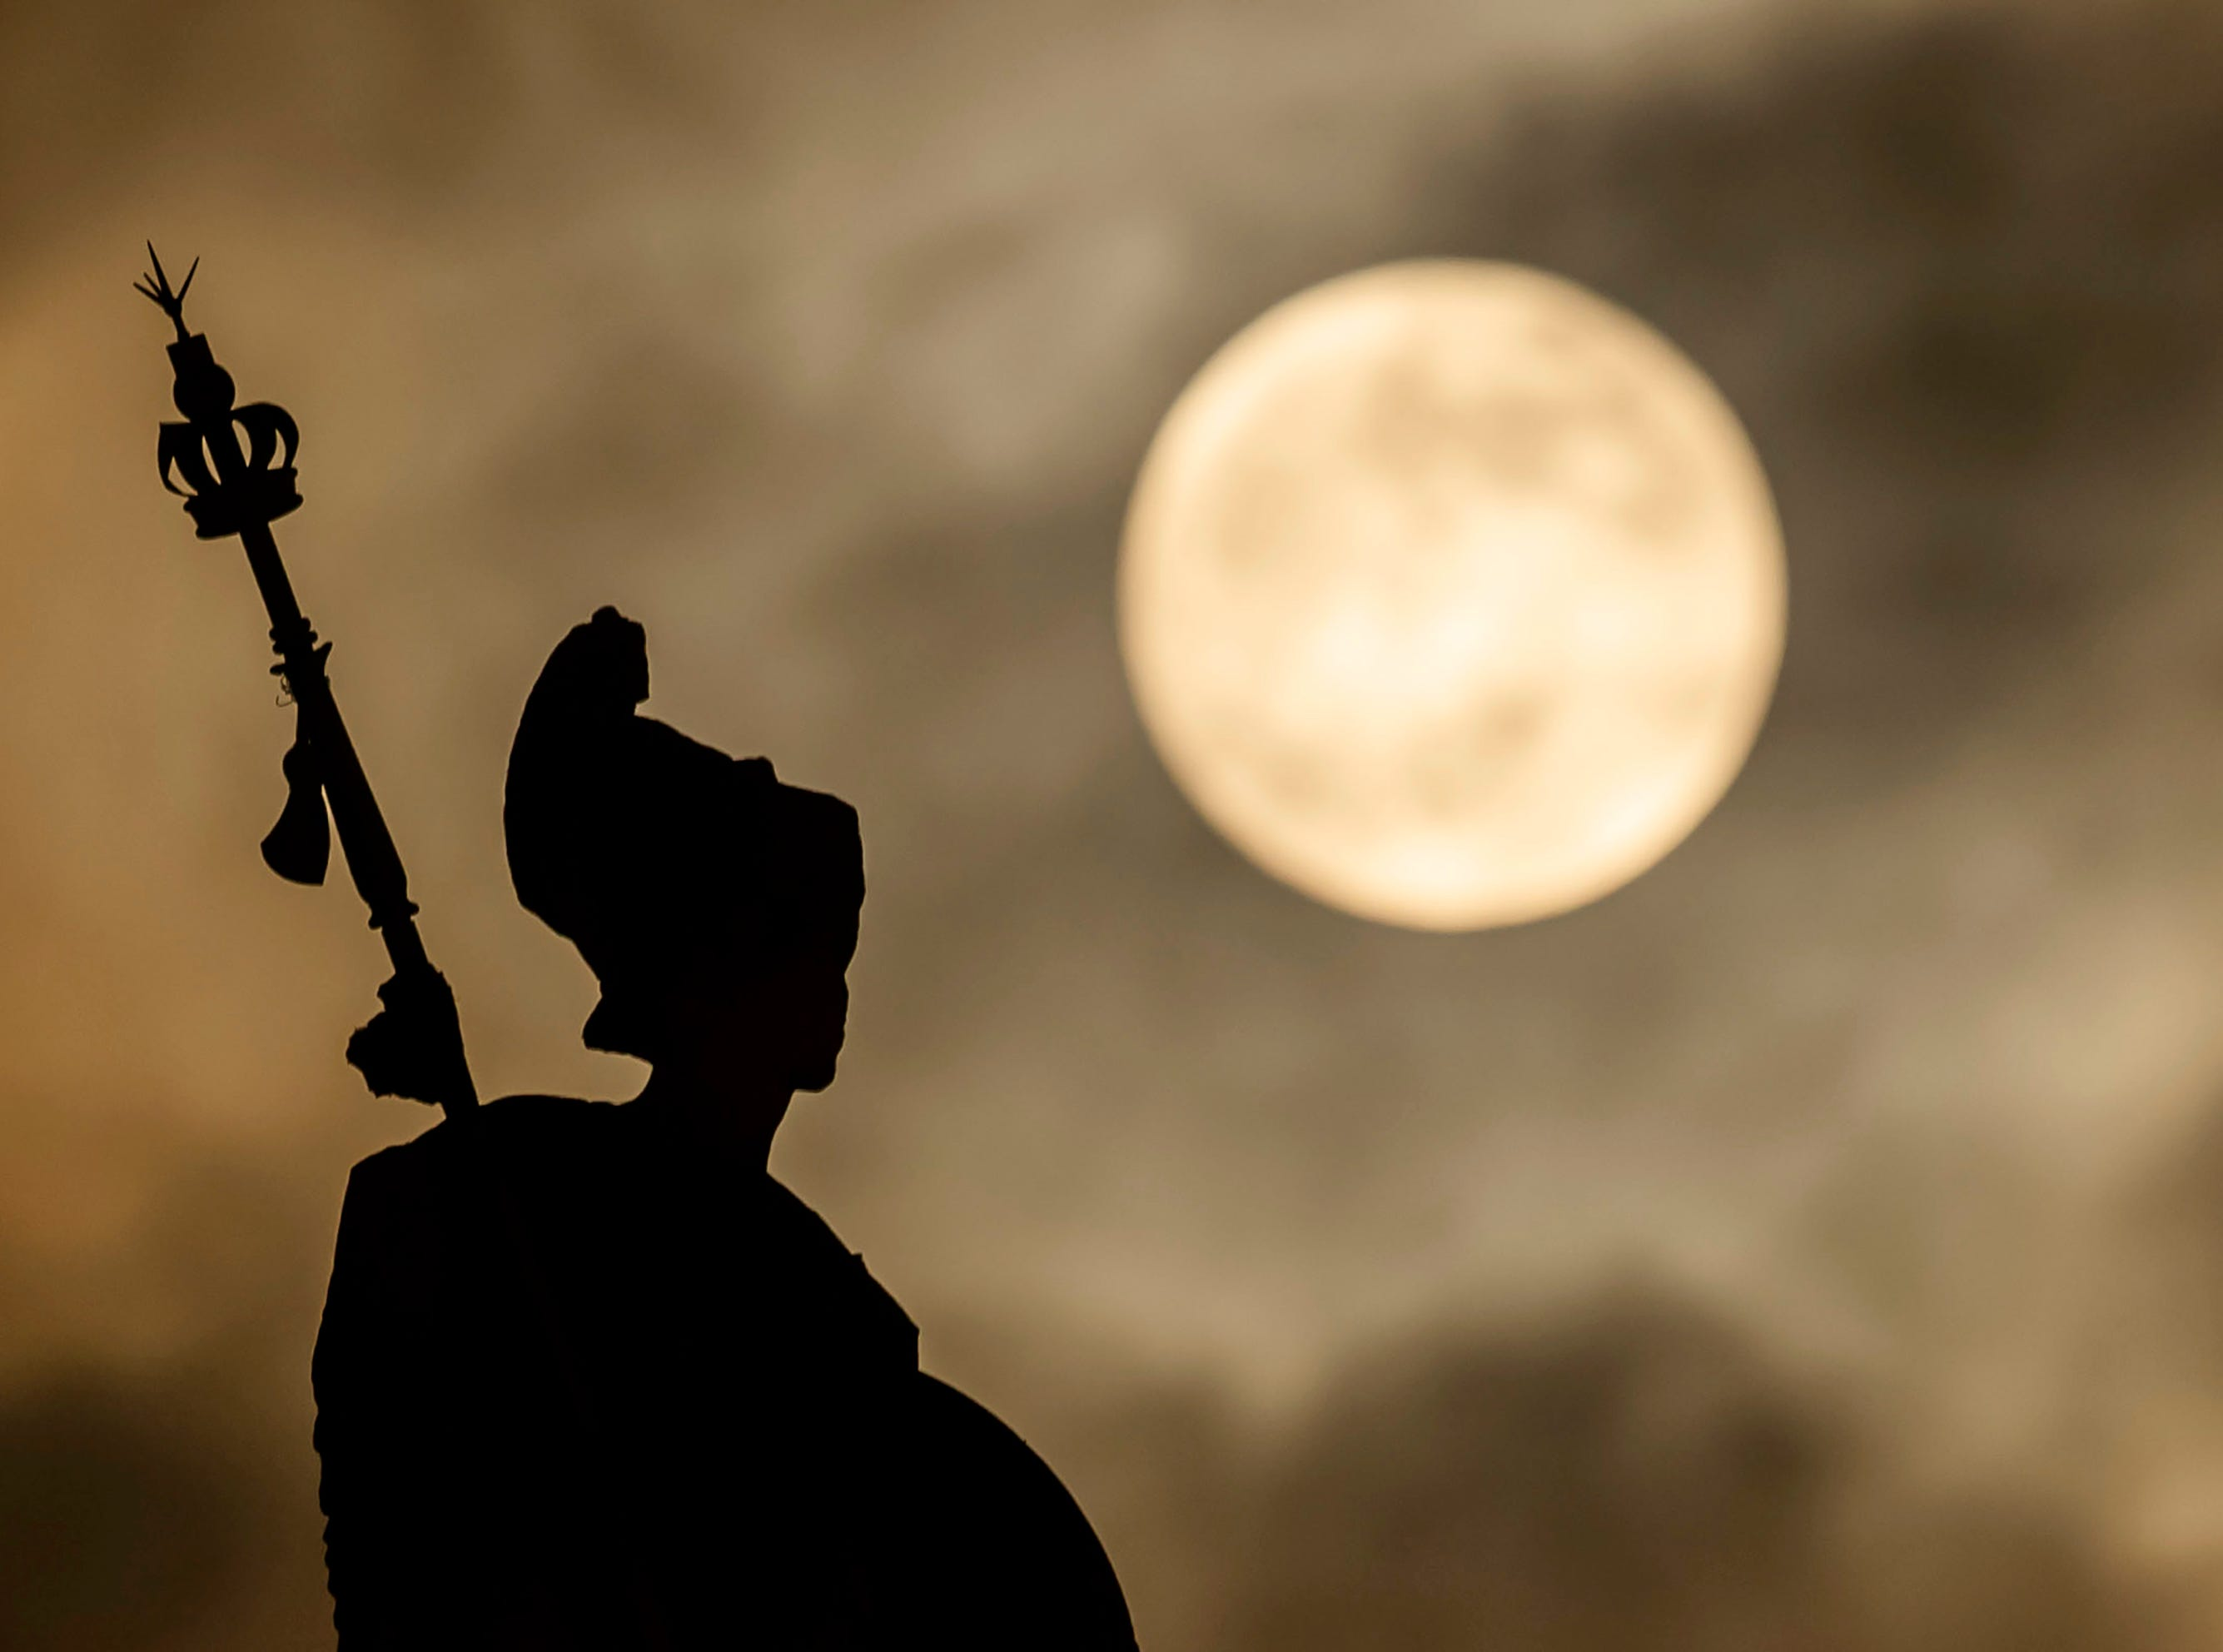 A supermoon rises above the Britannia statue at Hull Guildhall ahead of the Lunar Eclipse, in Hull, England, Sunday, Jan. 20, 2019.